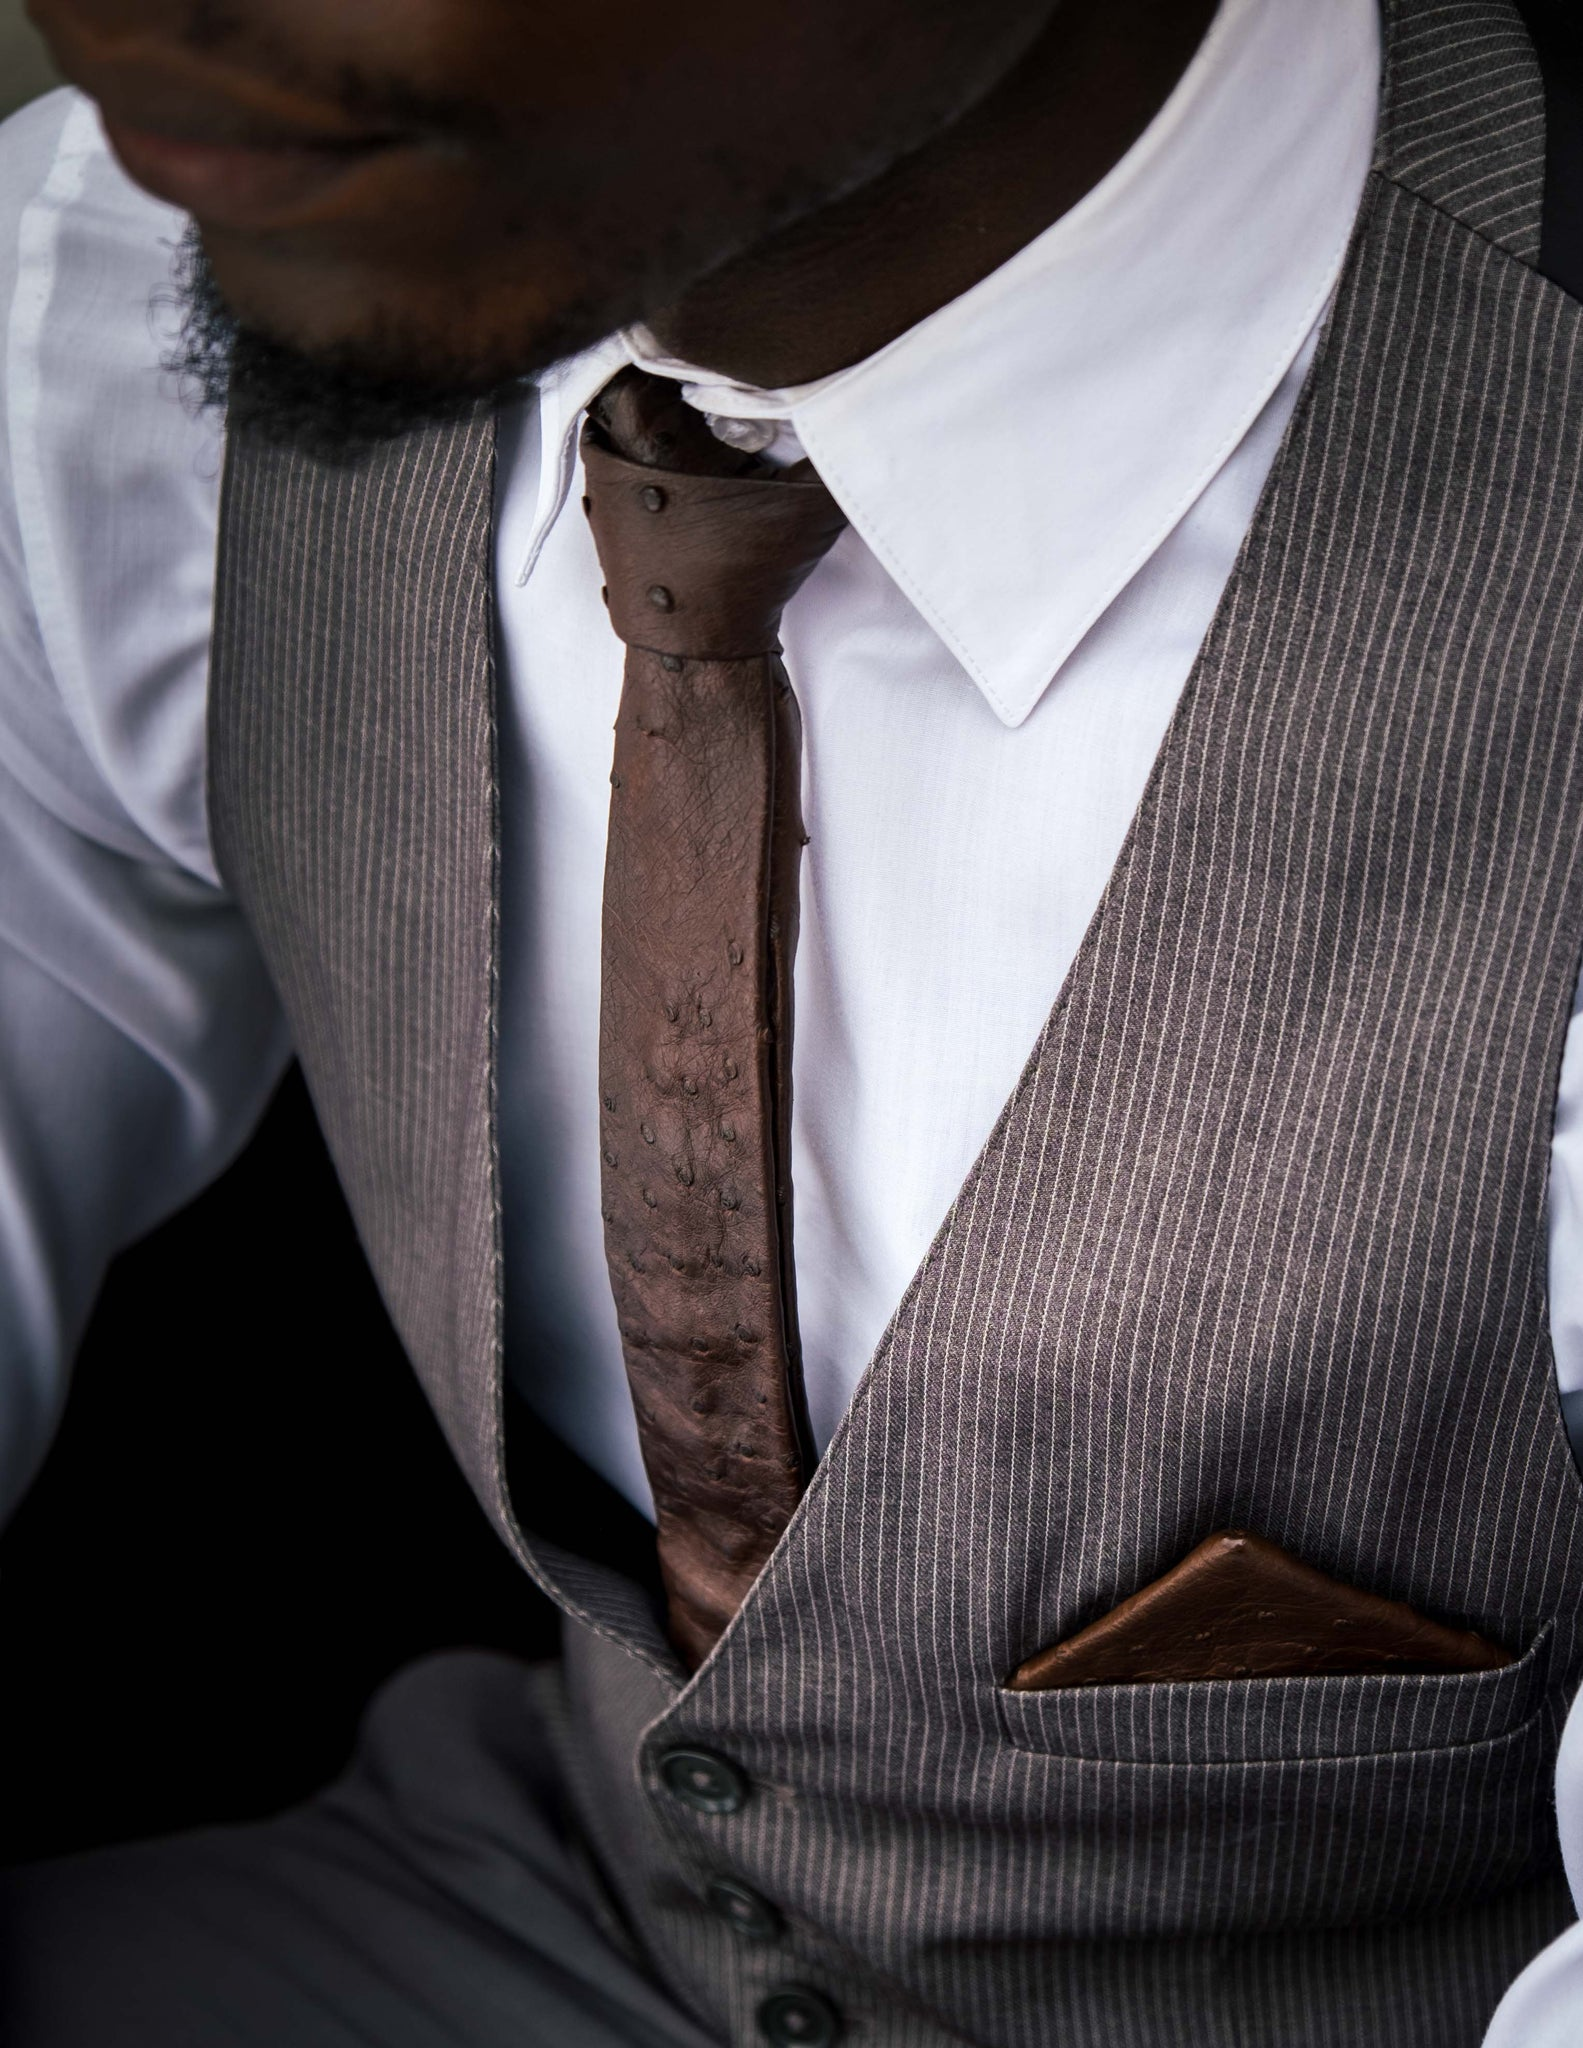 SKINNY TIE NO.2 – DARK BROWN OSTRICH